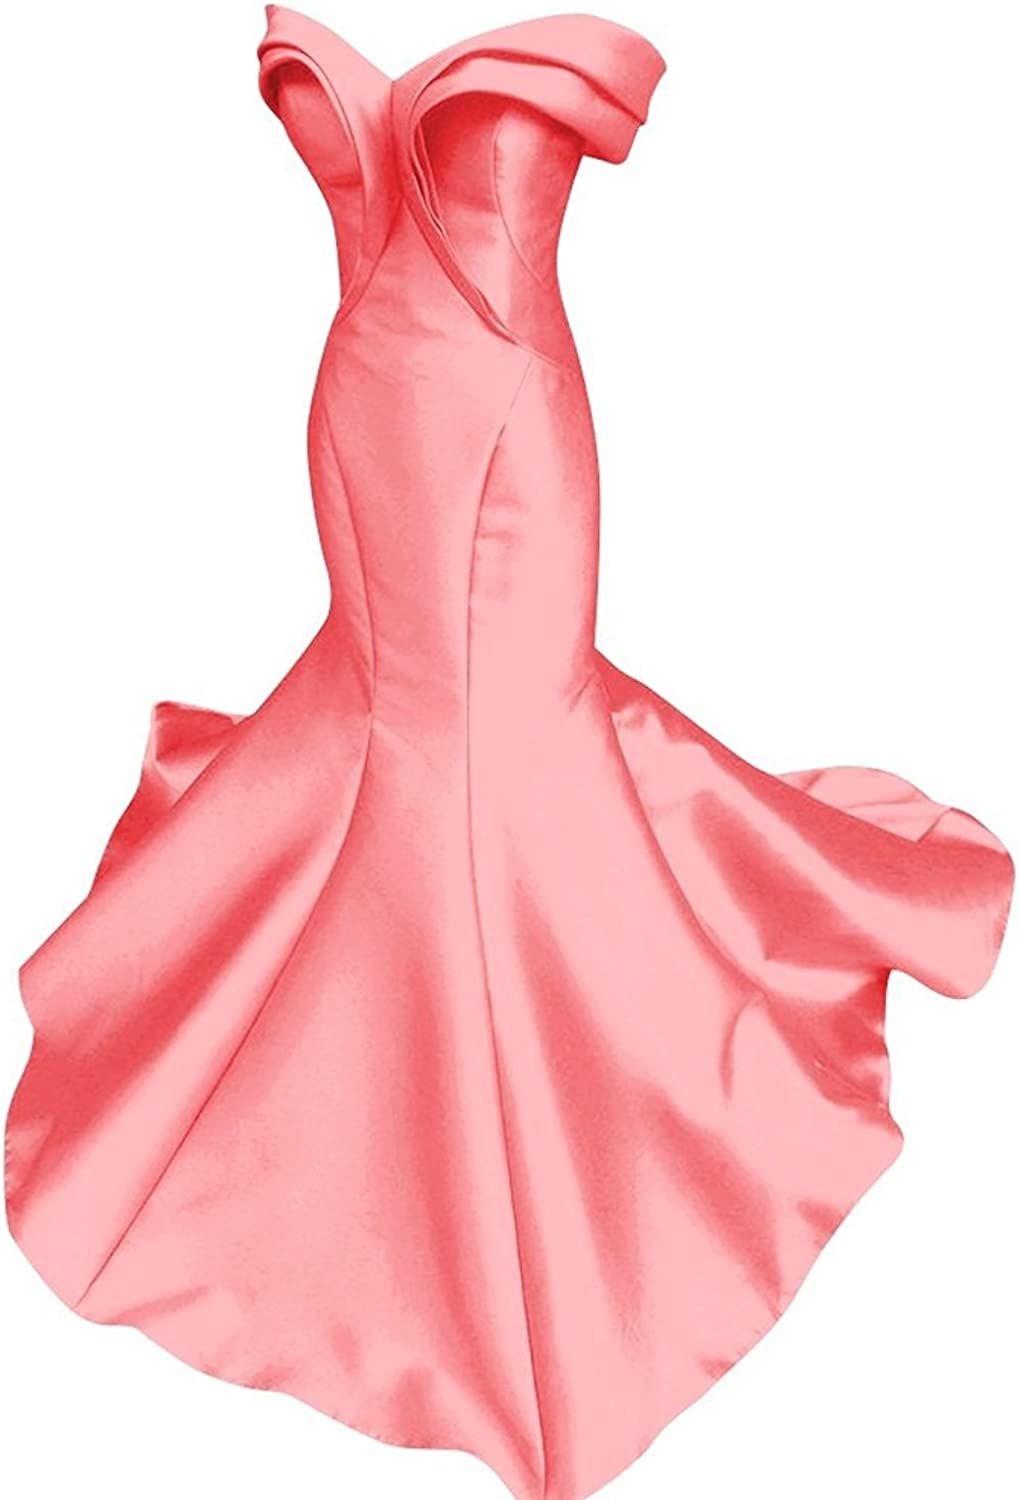 Allenqueen Women's Pleat Long Mermaid Evening Gown Tired Skirt Satin Formal Prom Dress